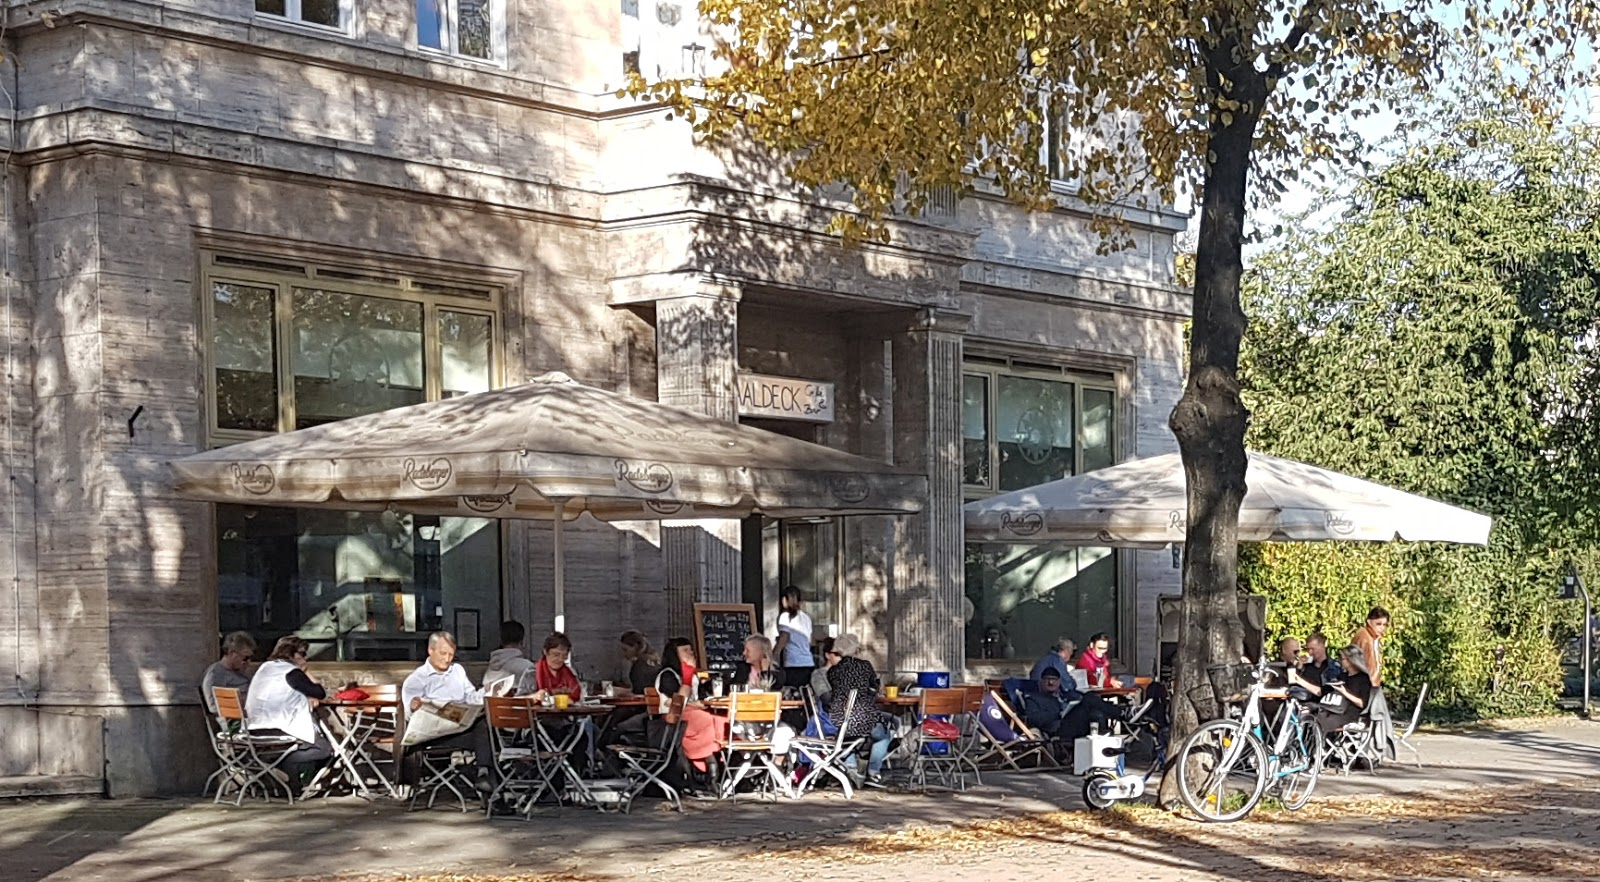 Saaldeck Café & Bar: A Work-Friendly Place in Berlin